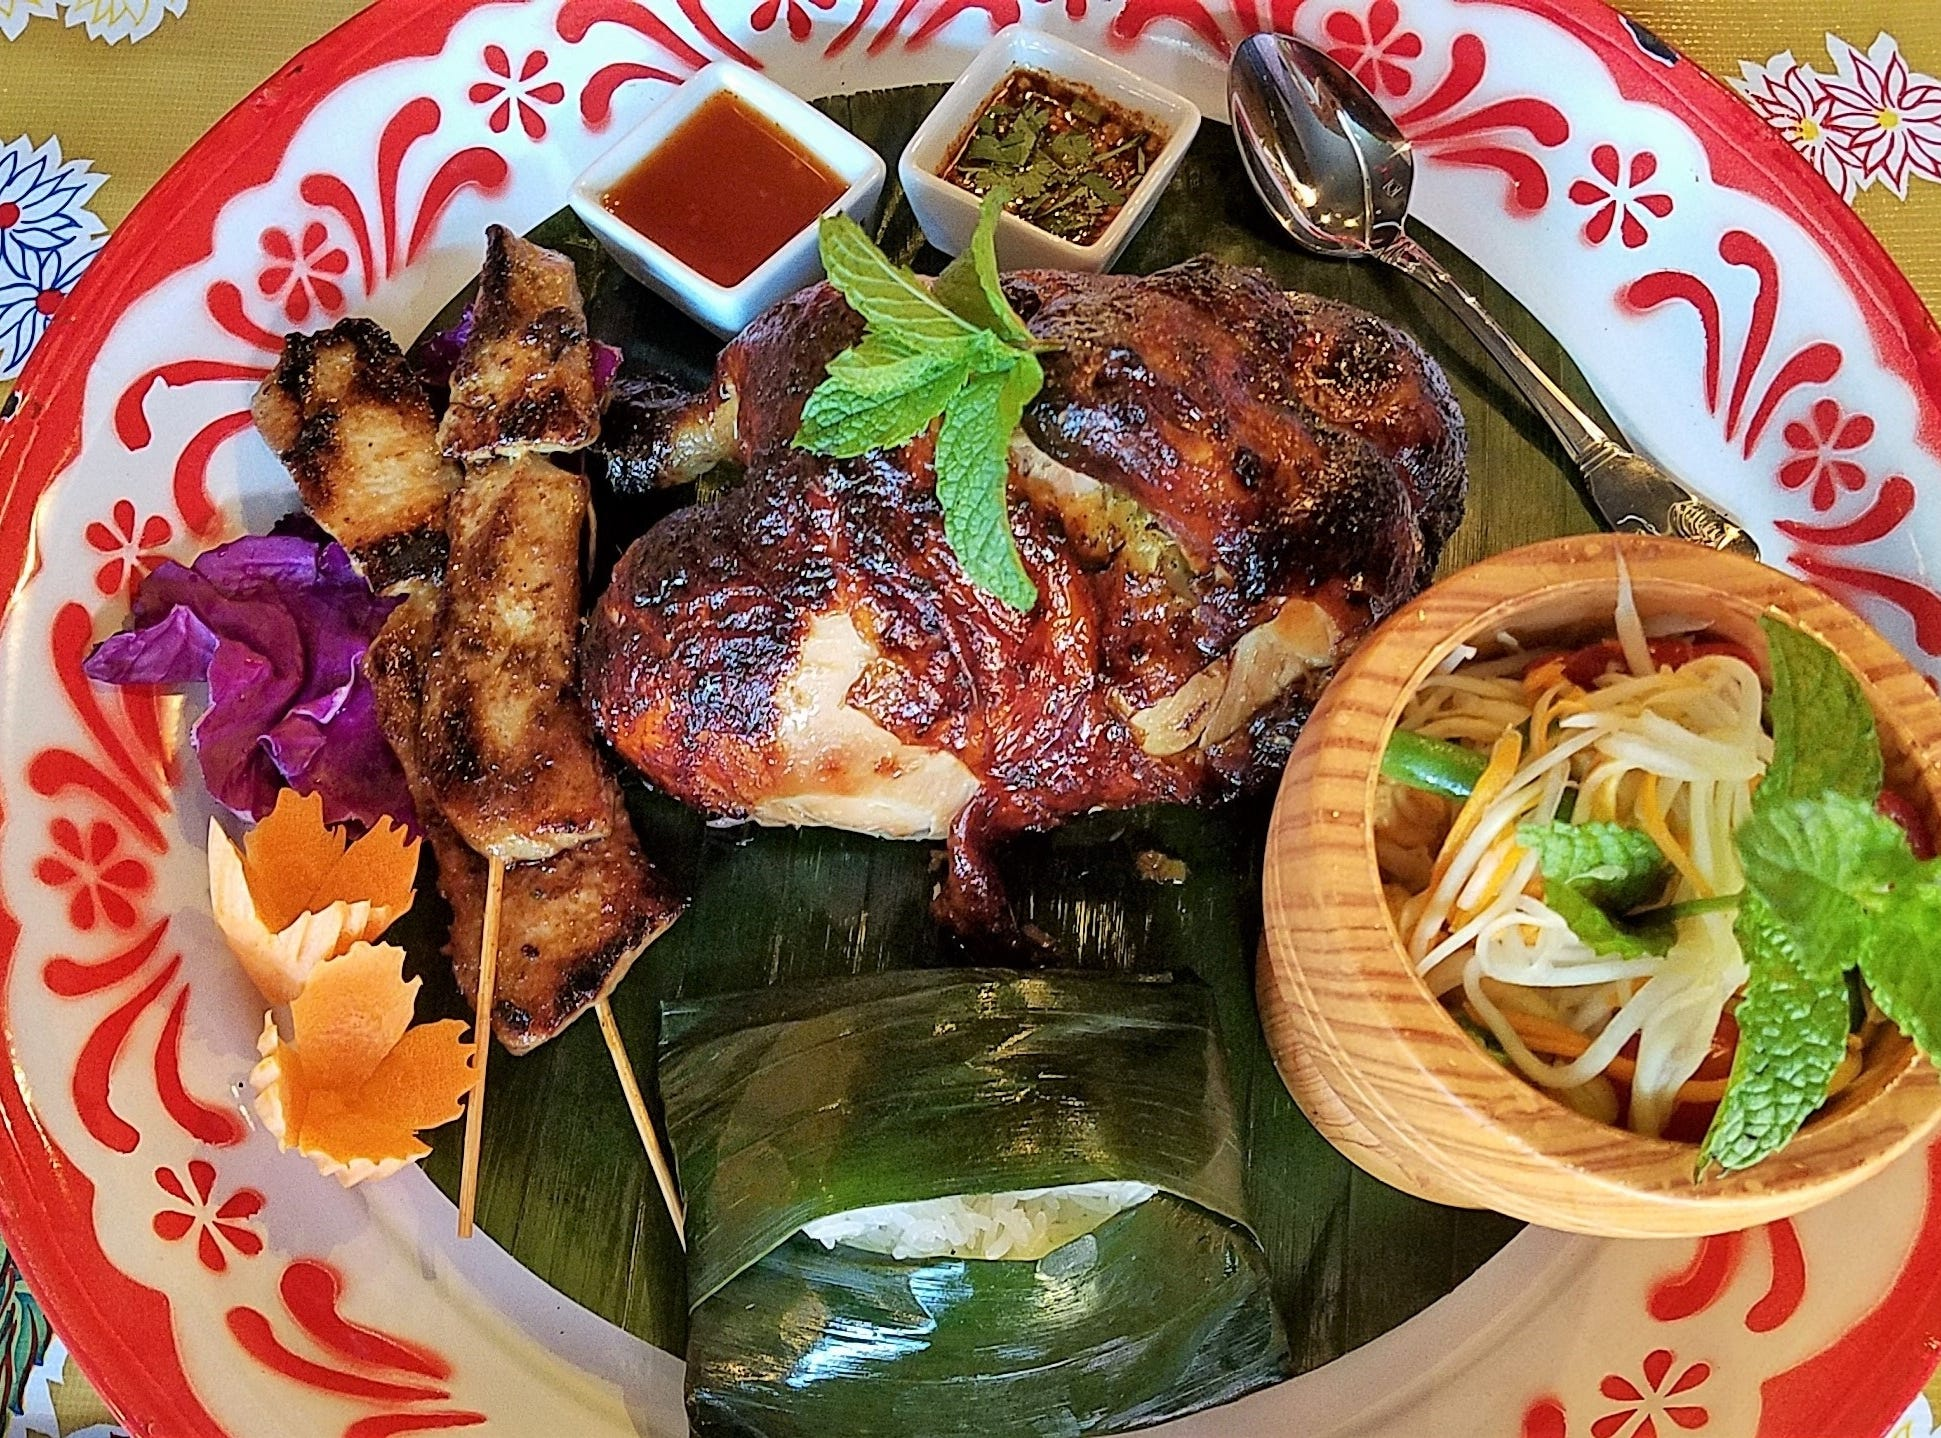 Kai Yang is will bring casual Thai dining to Montclair.